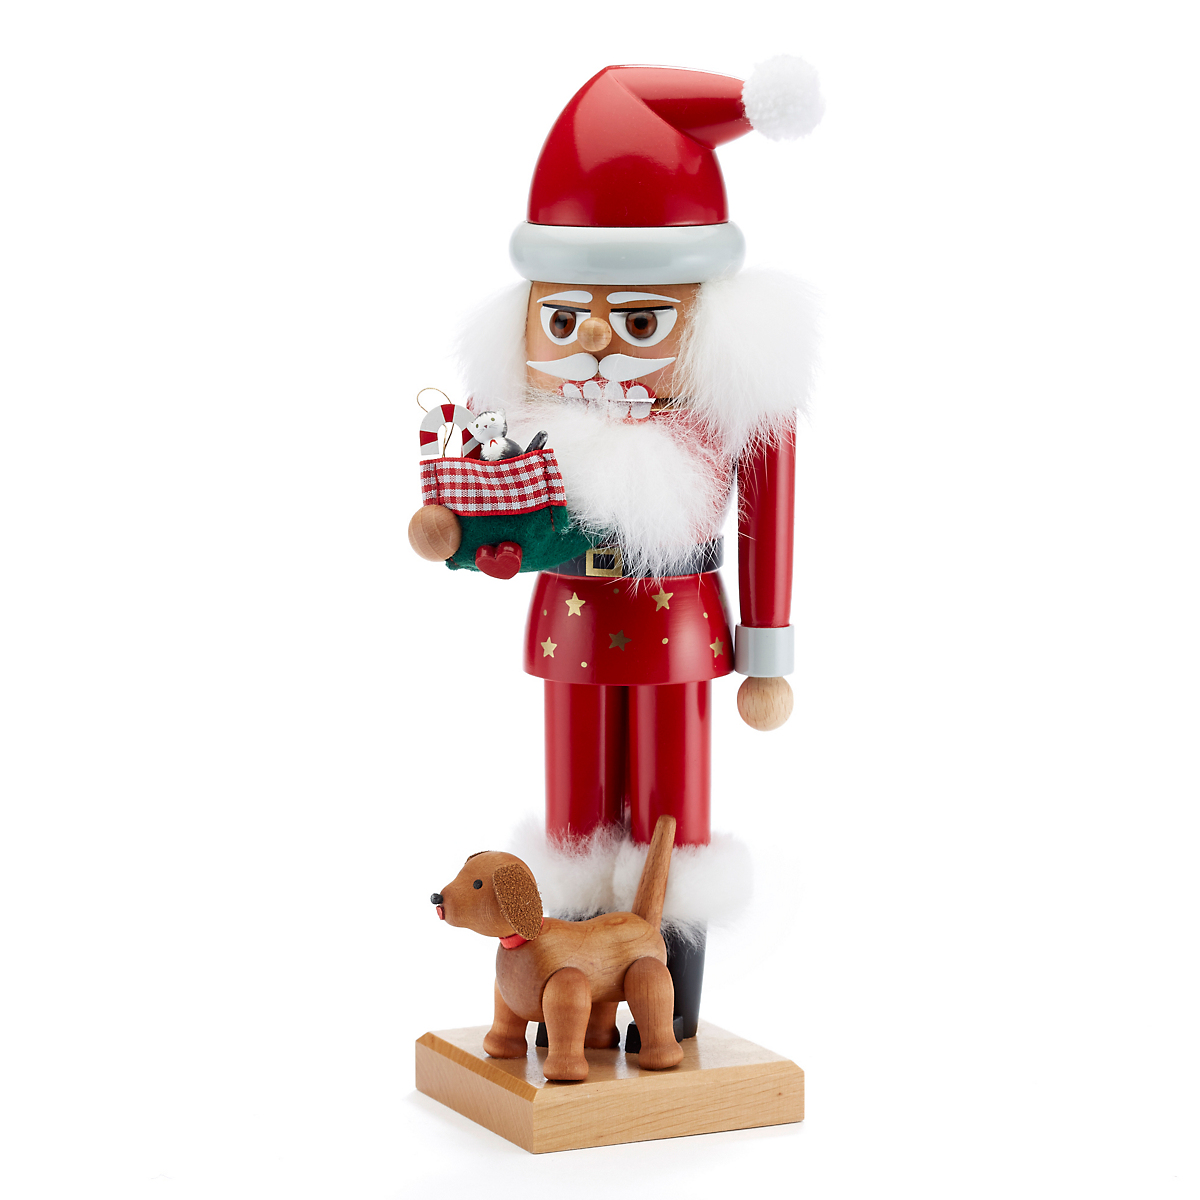 Santa & Friends Nutcracker